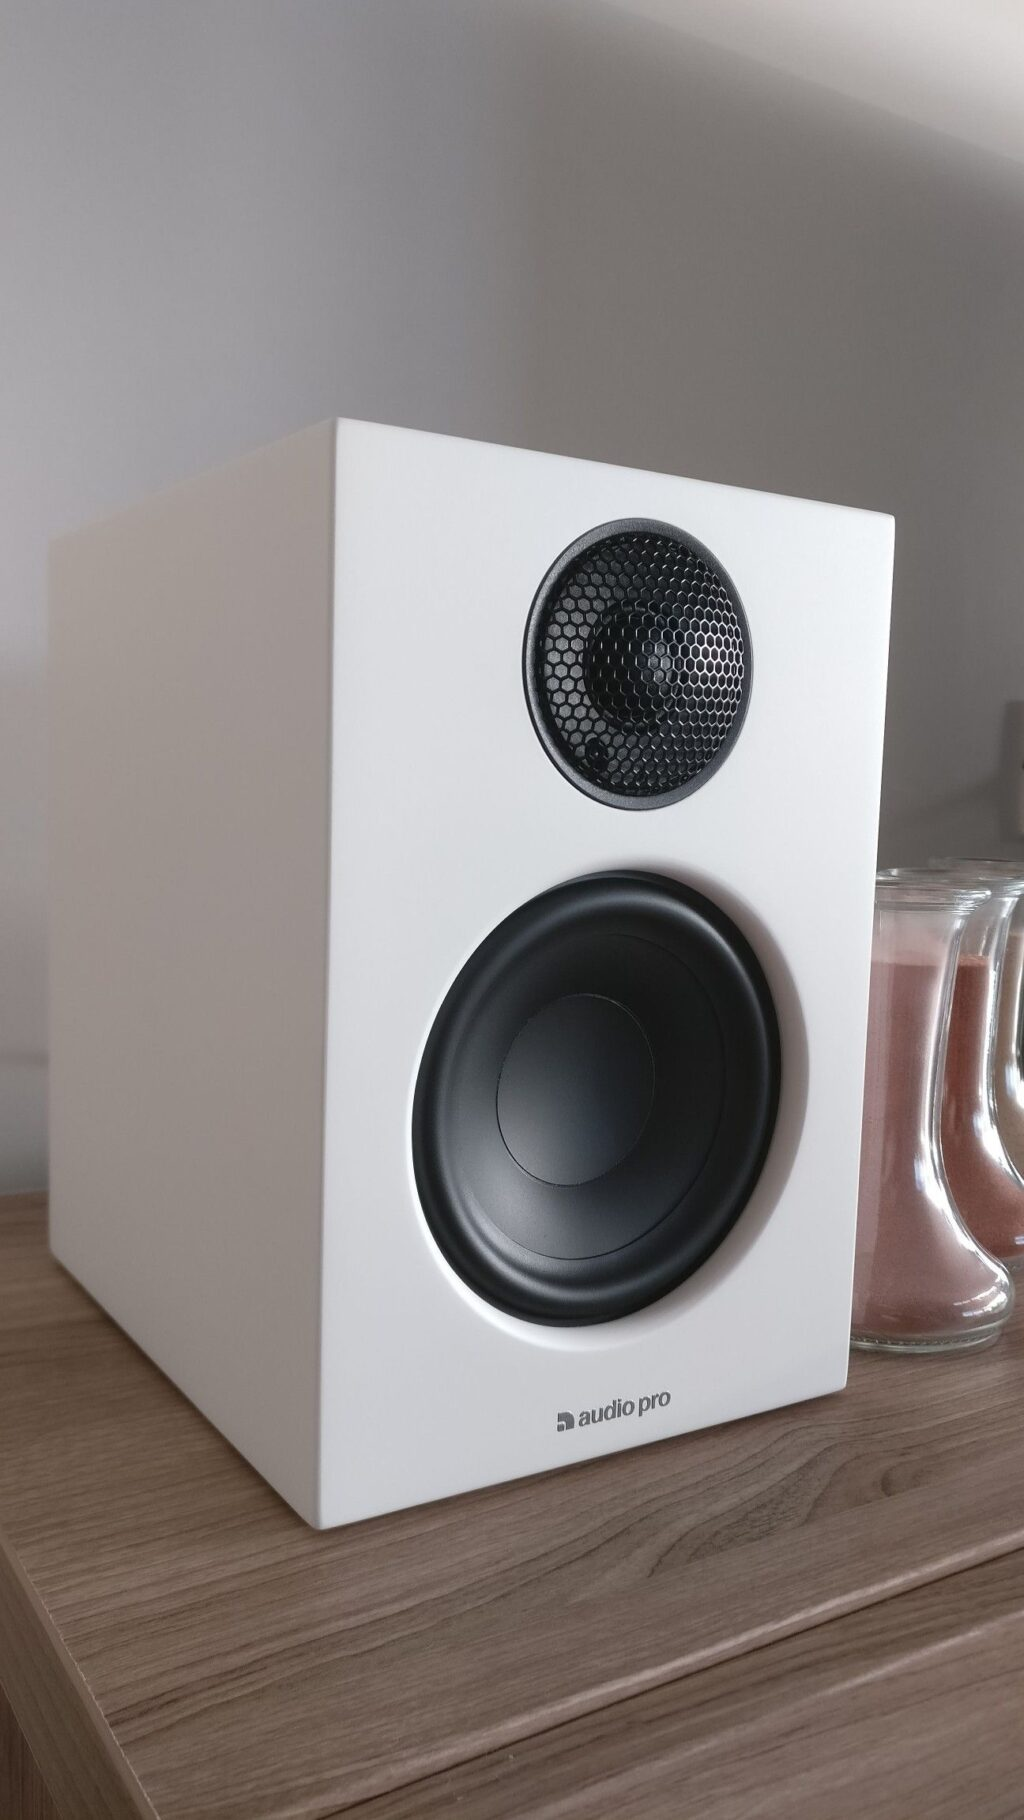 Audio Pro A26 1024x1820 REVIEW: Audio Pro Active Speakers Deliver For Both TV and Hi Fi Audio